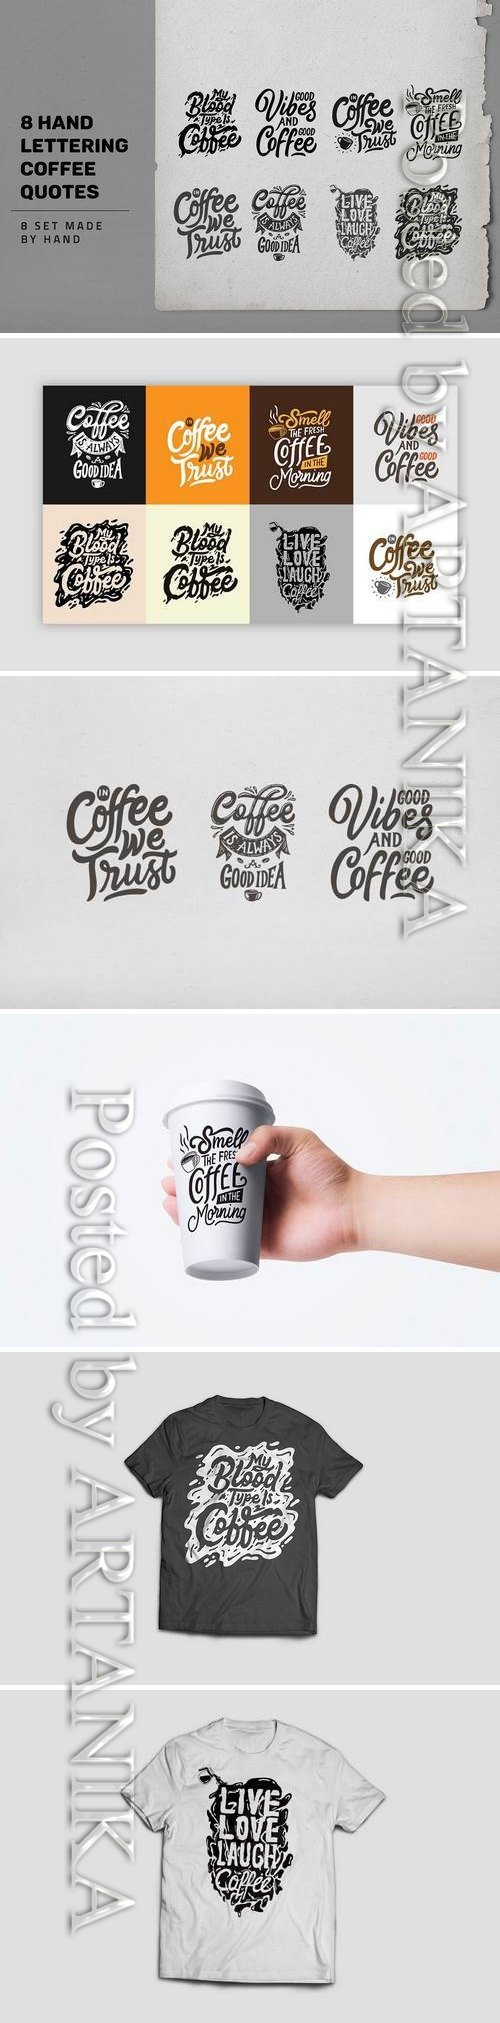 8 Hand Lettering Coffee Quotes